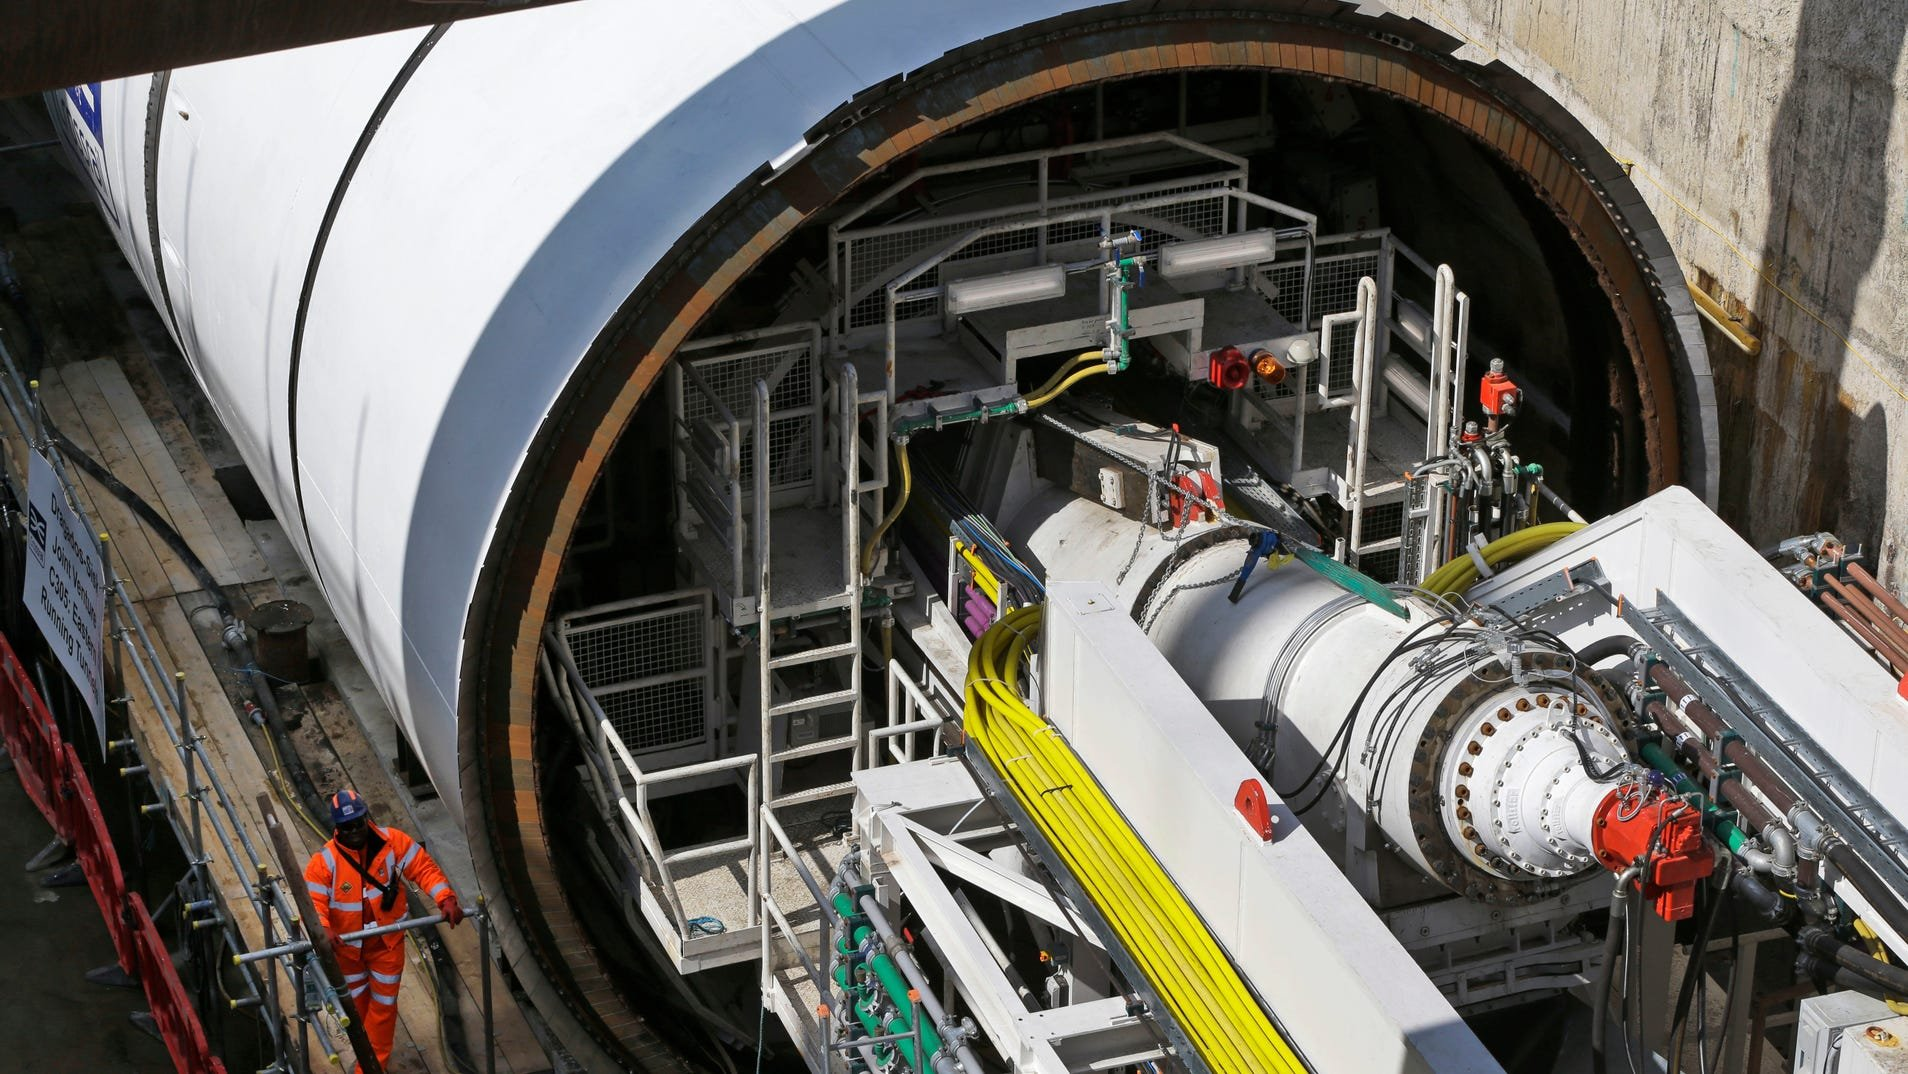 This 2013 photo shows one side of a tunnel boring machine